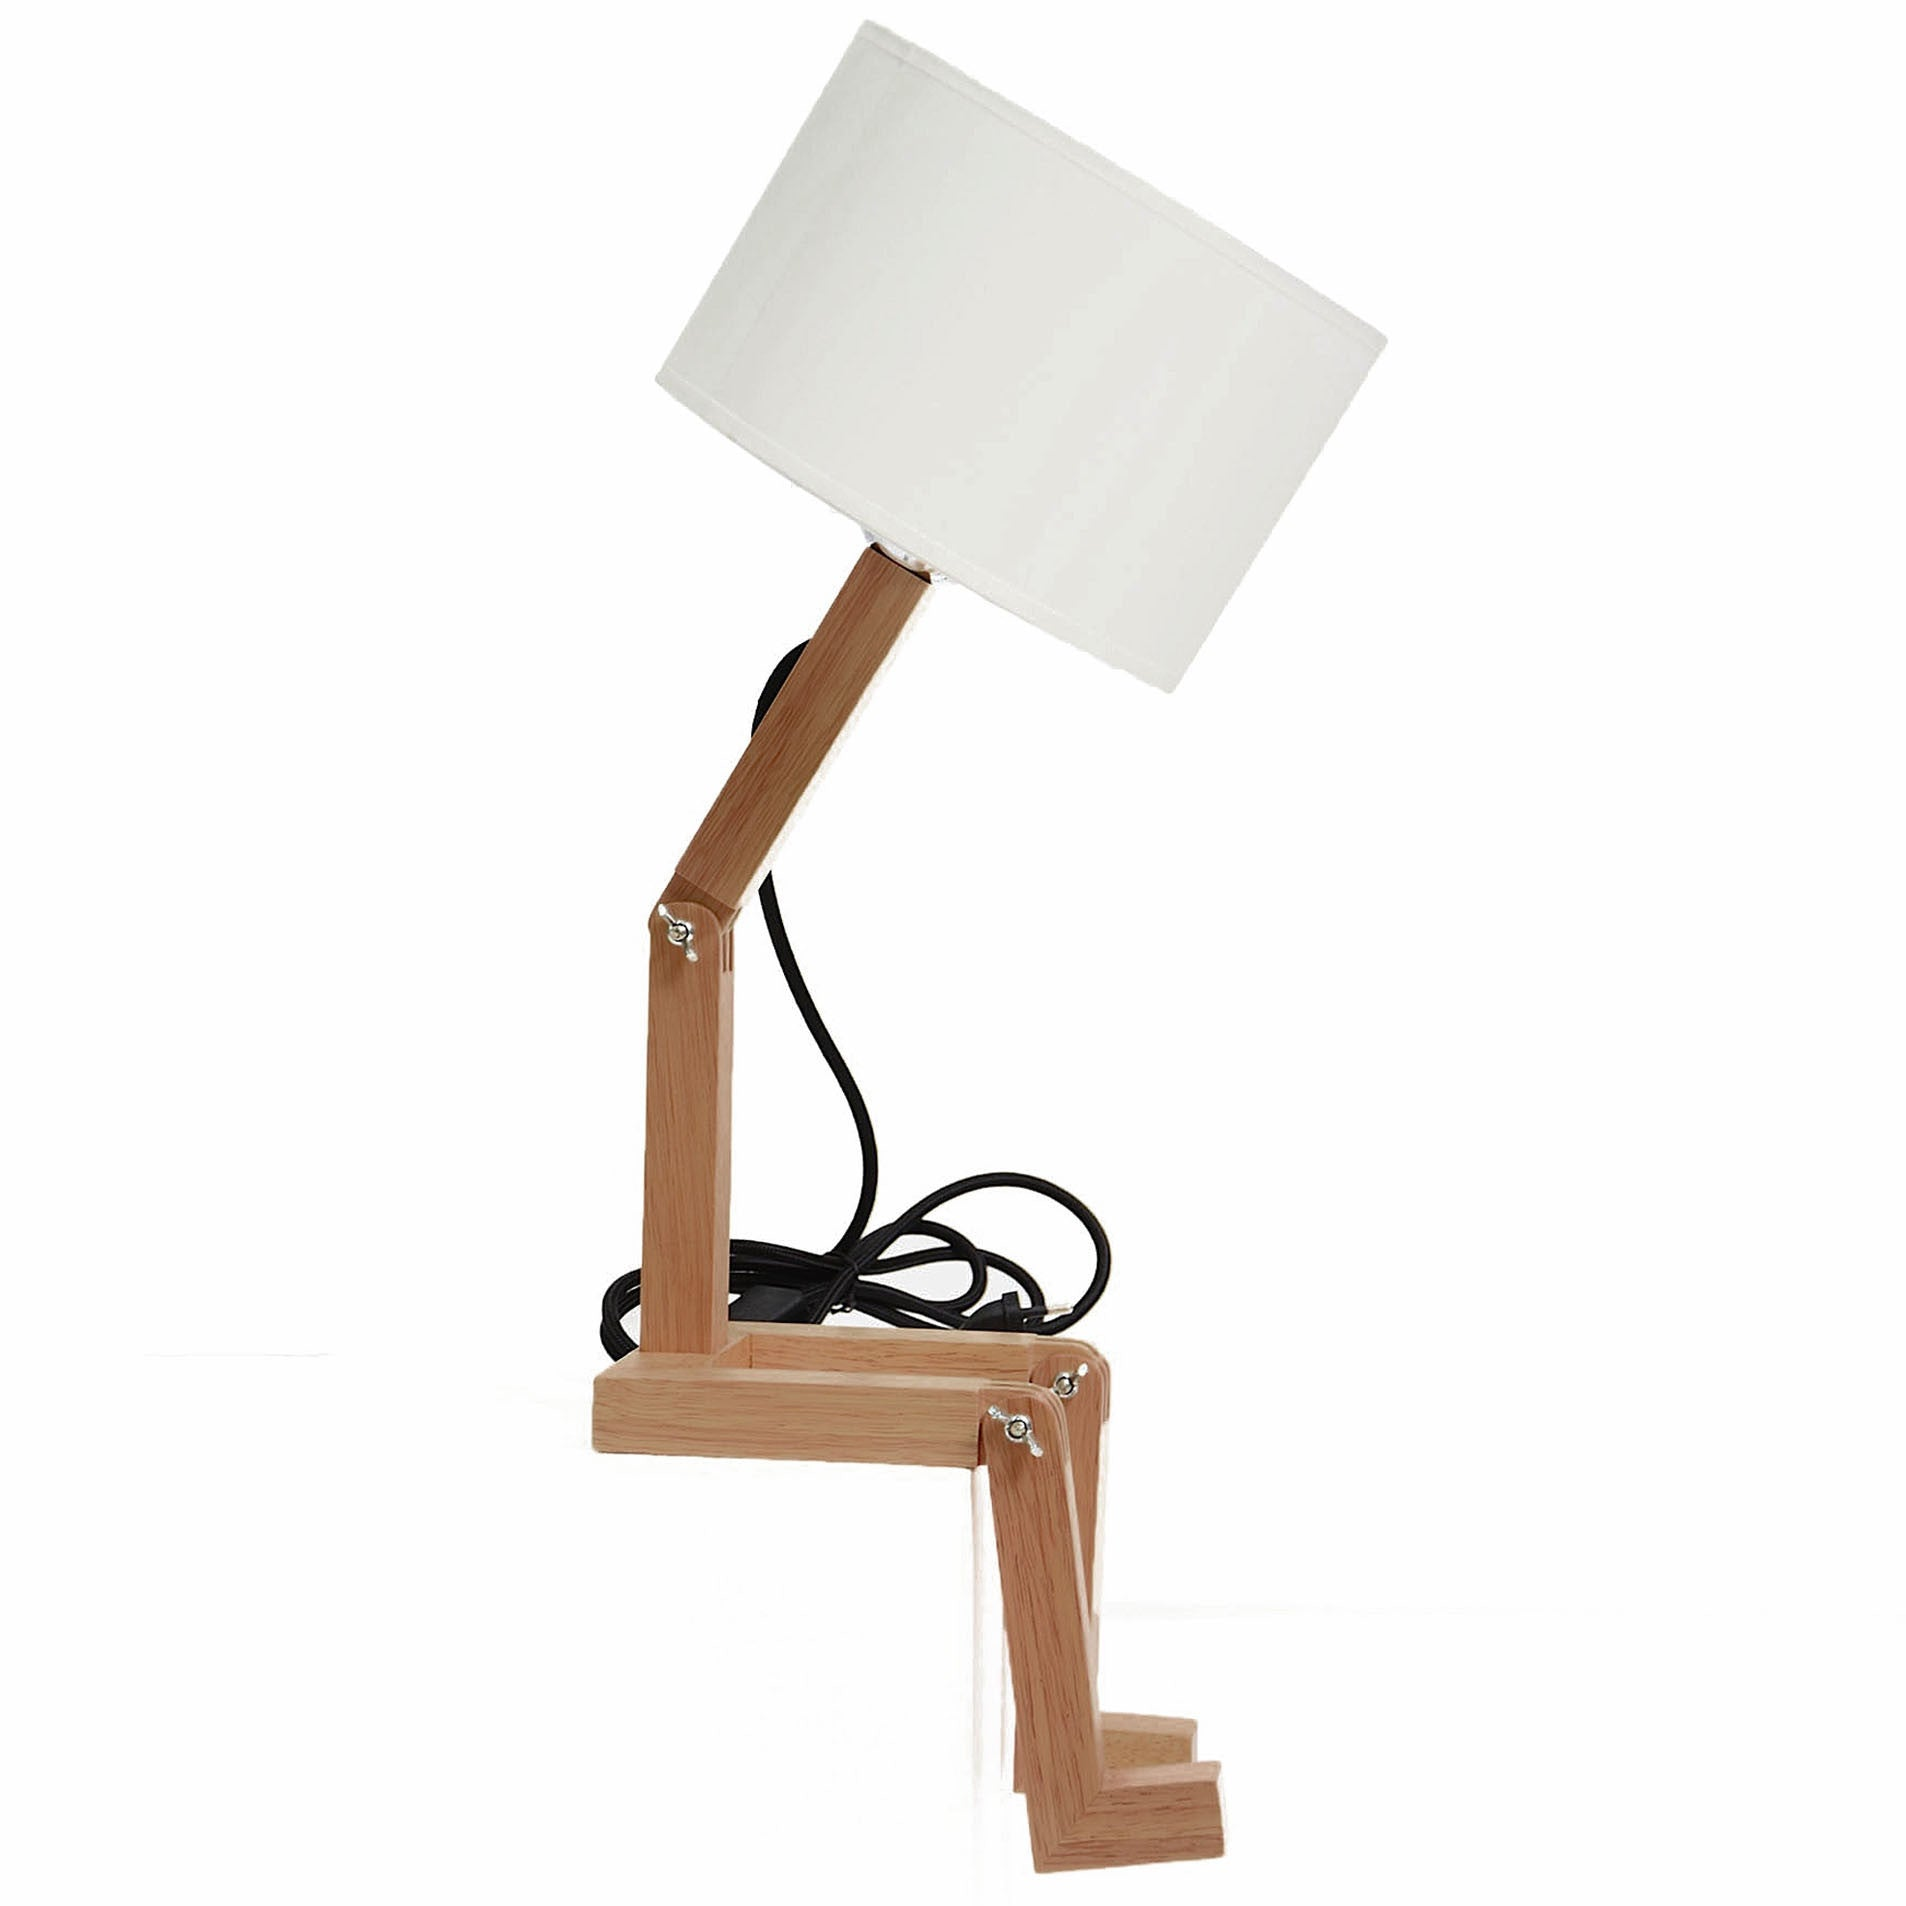 Mr.Lonley  Solid Wood table lamp BPMT01-W - ebarza